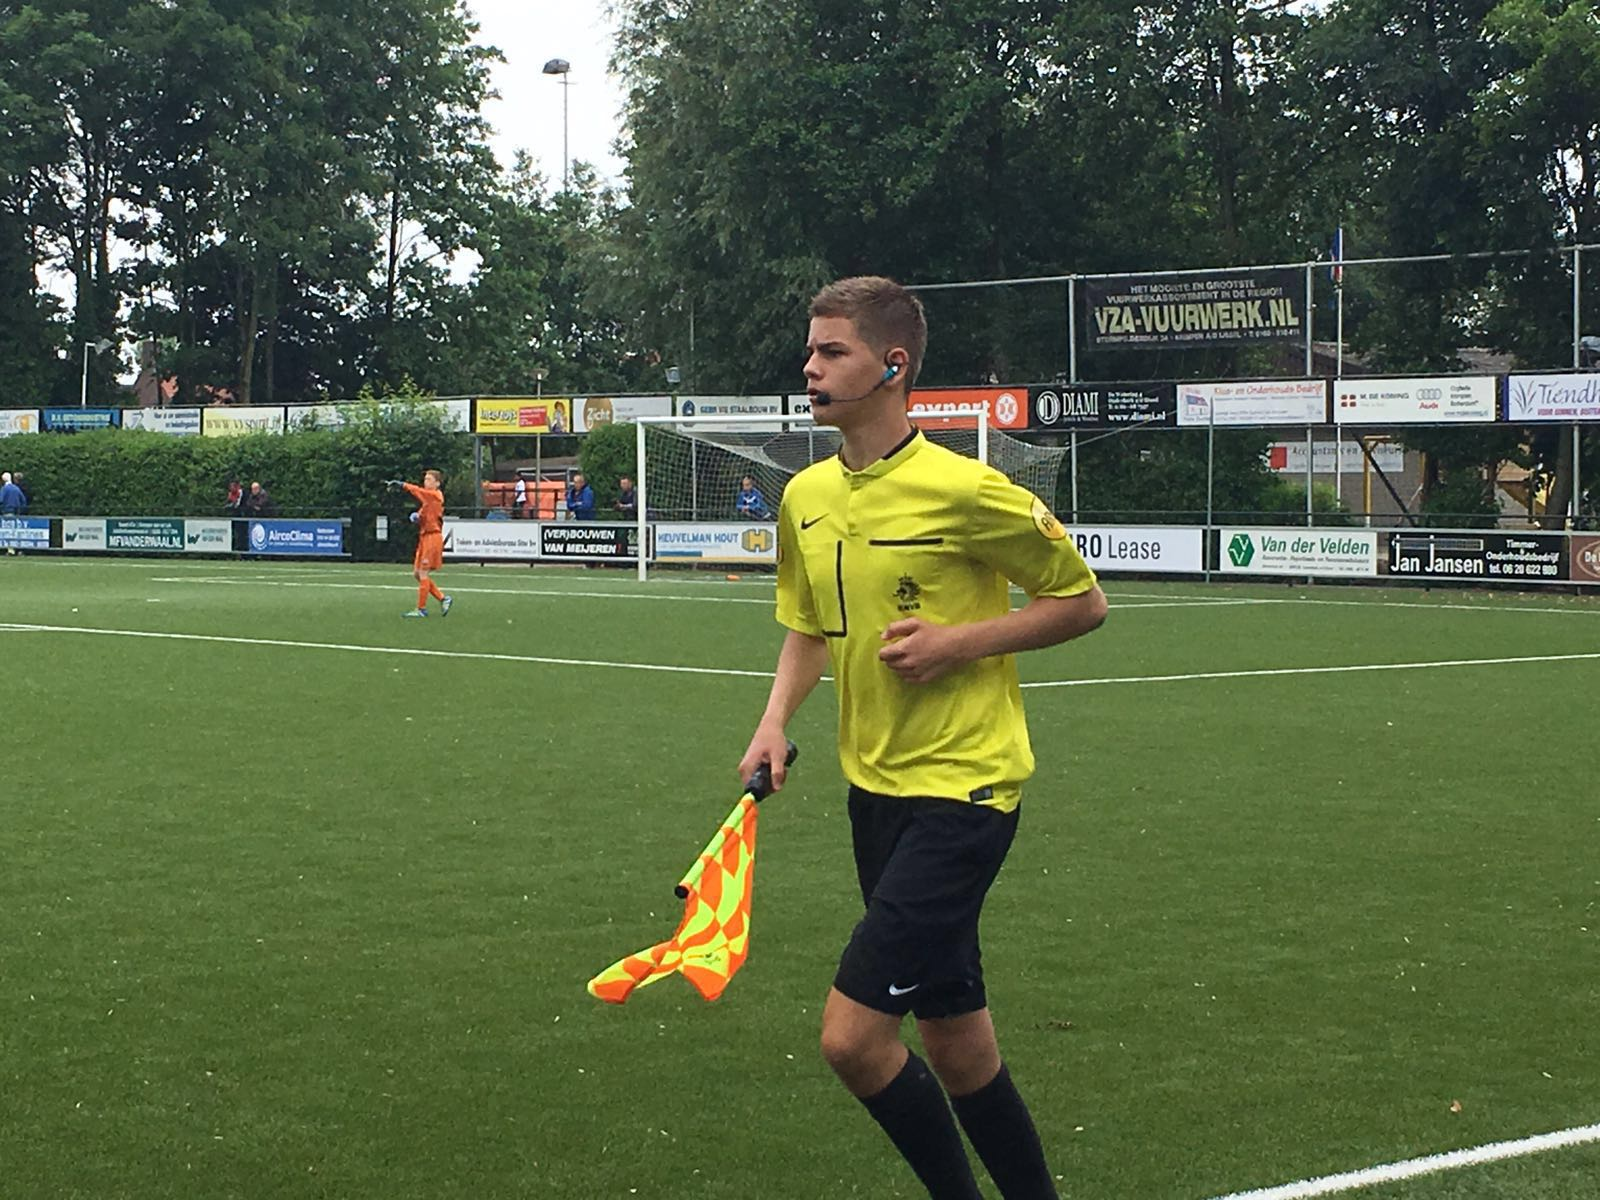 /wireless-communication-system-assistent-referee-soccer-axiwi